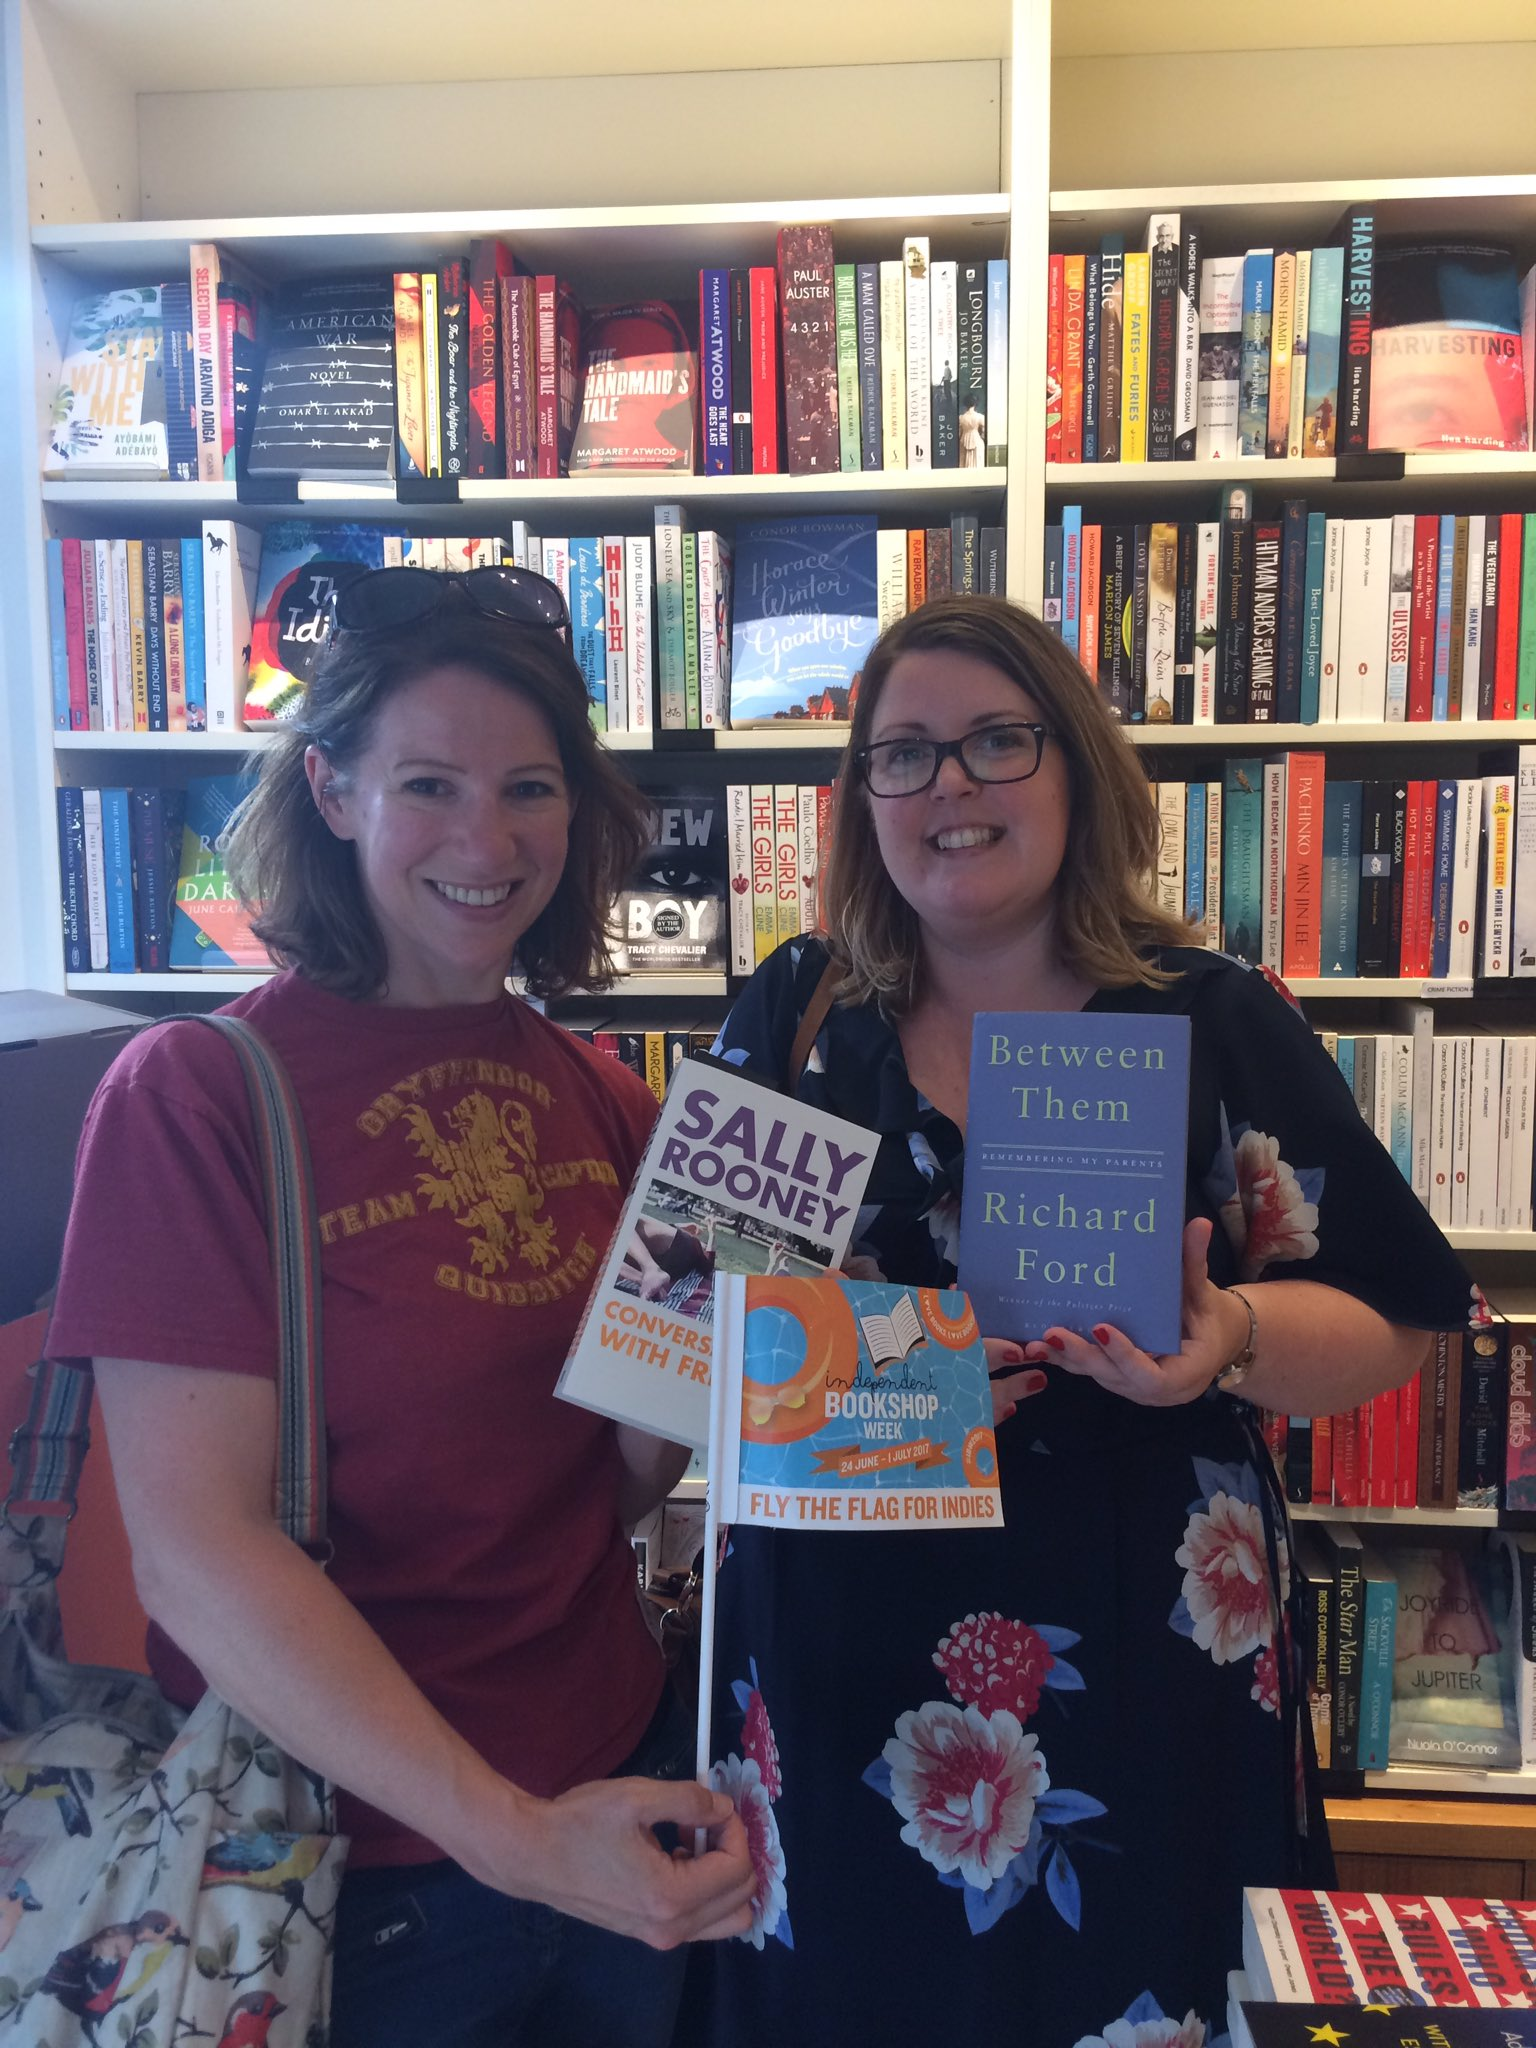 Stop no. 7: Gwen at @CompanyofBooks who recommended Conversations With Friends & Between Them! #ibw17 #ibw2017 #BookshopCrawl https://t.co/lCjxMQJdel